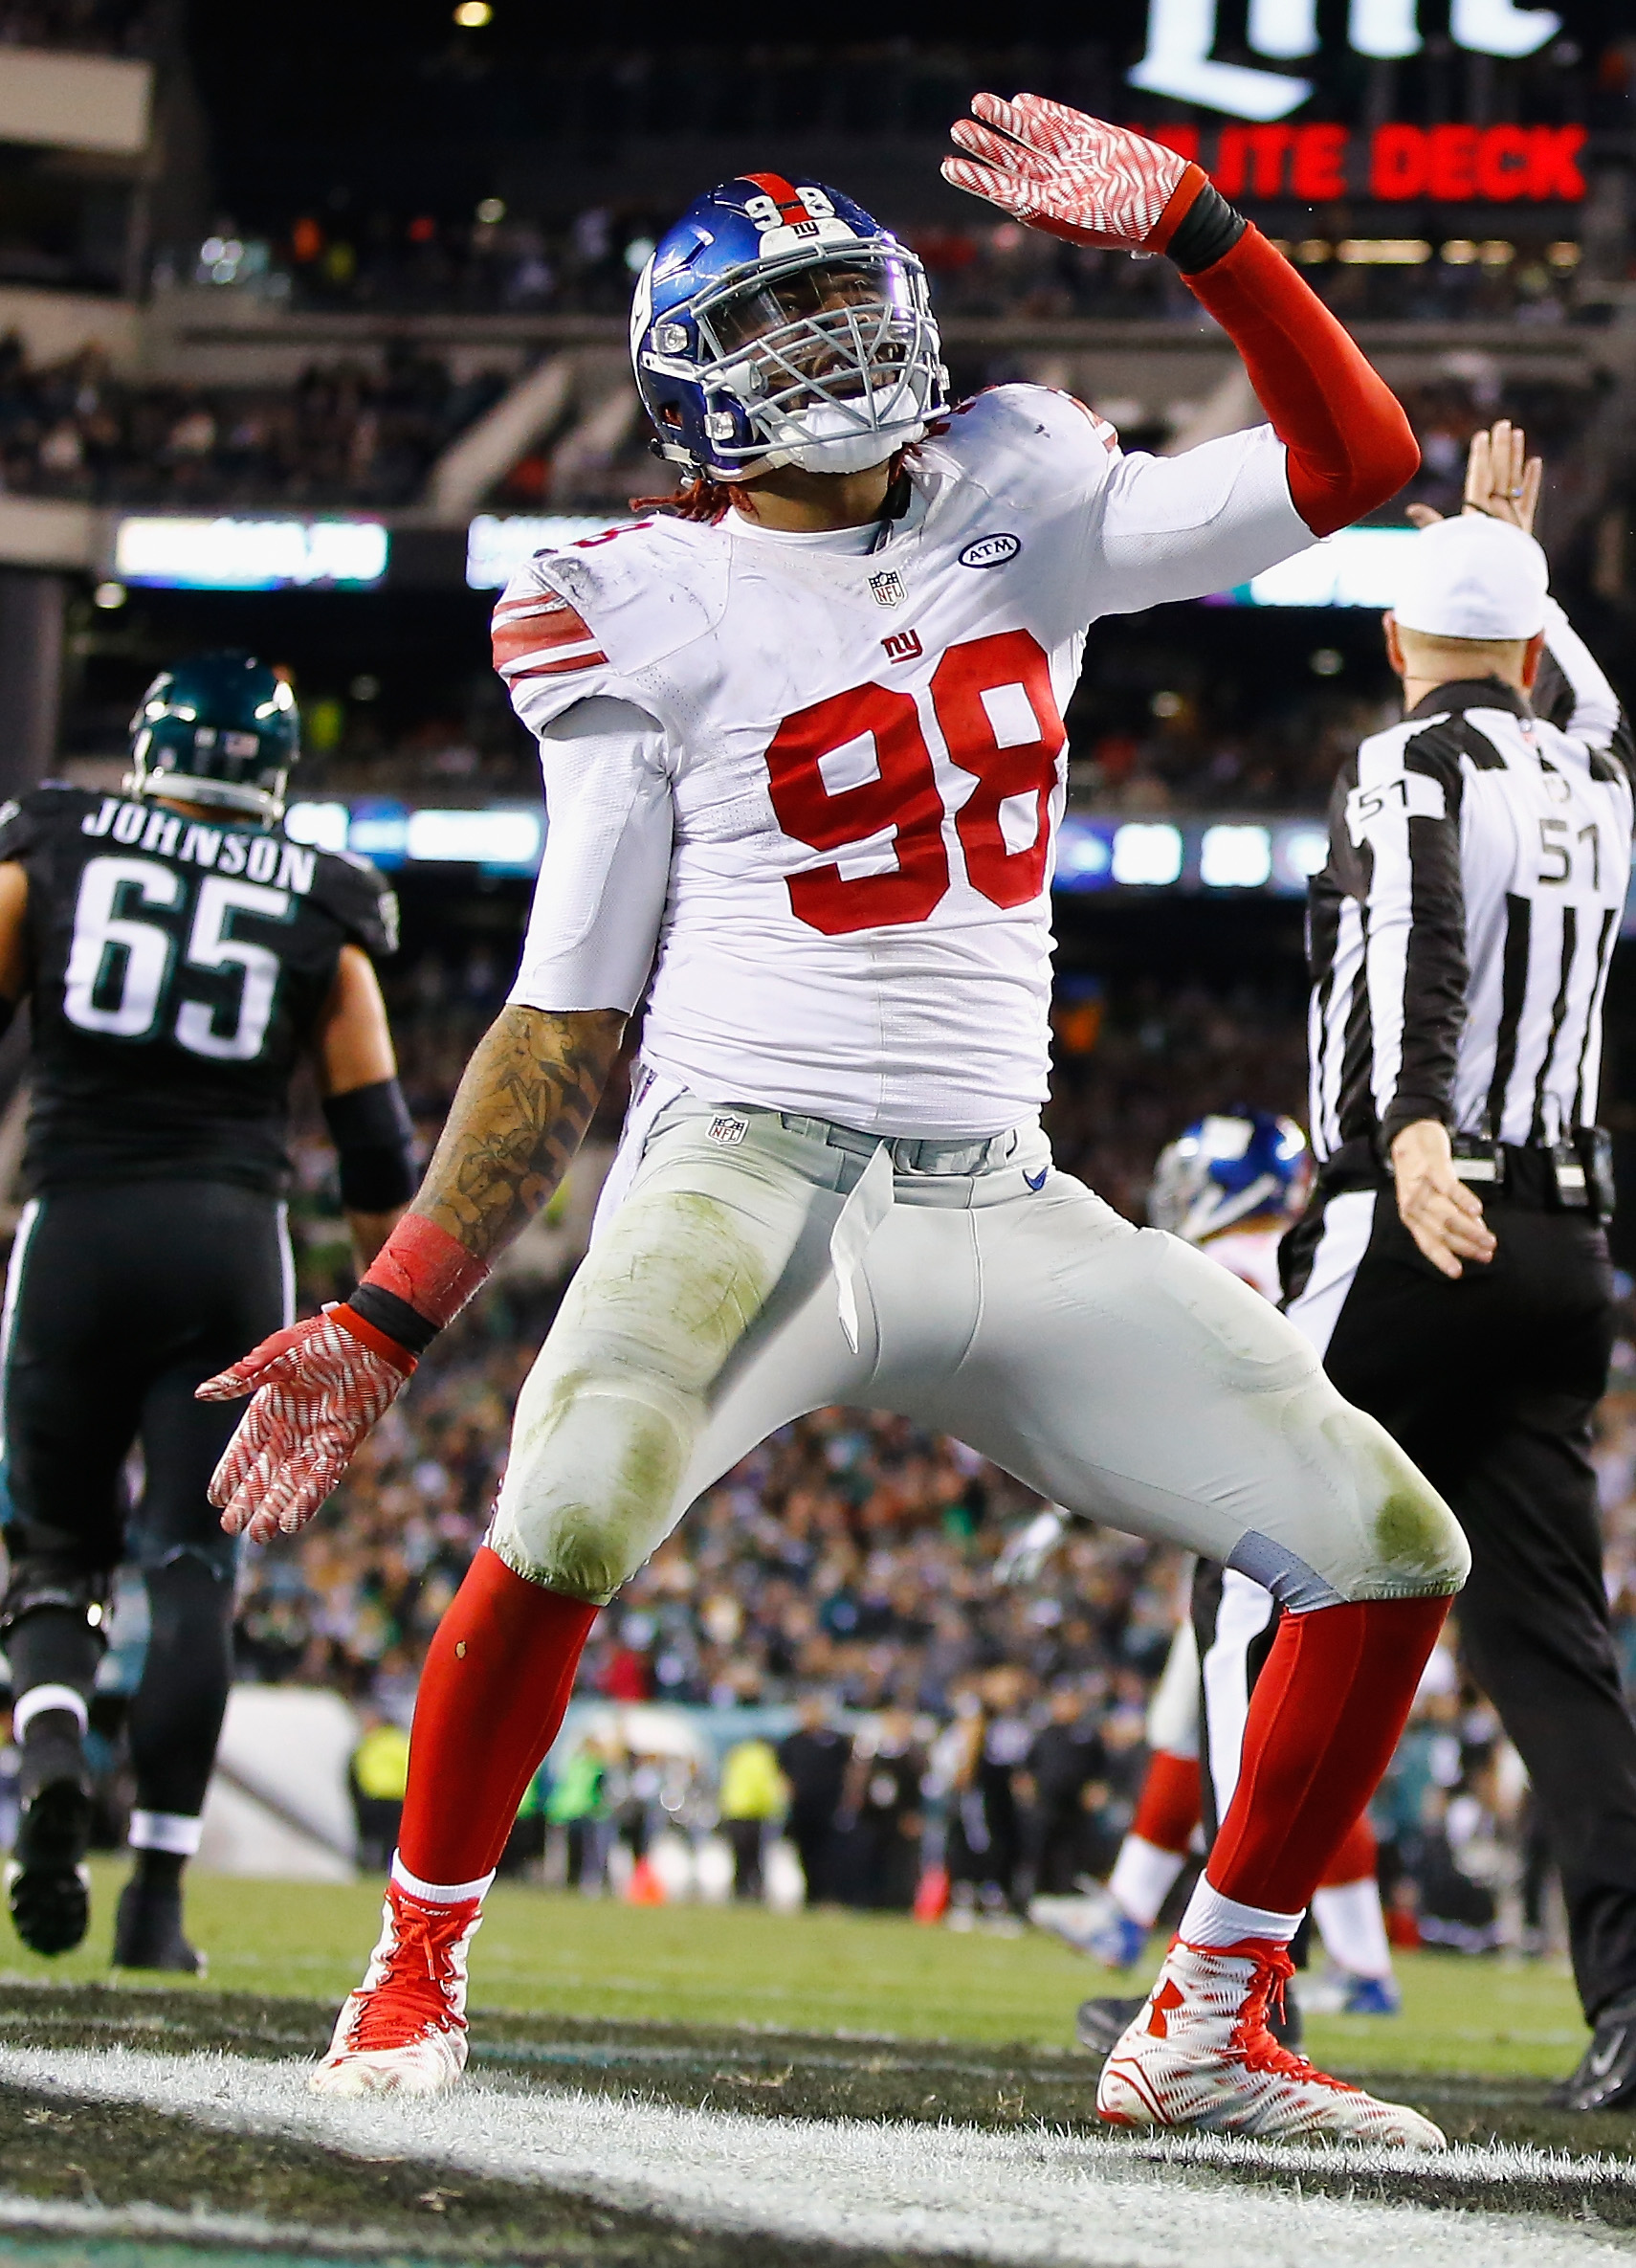 Damontre Moore won't get a chance to dance on Sunday